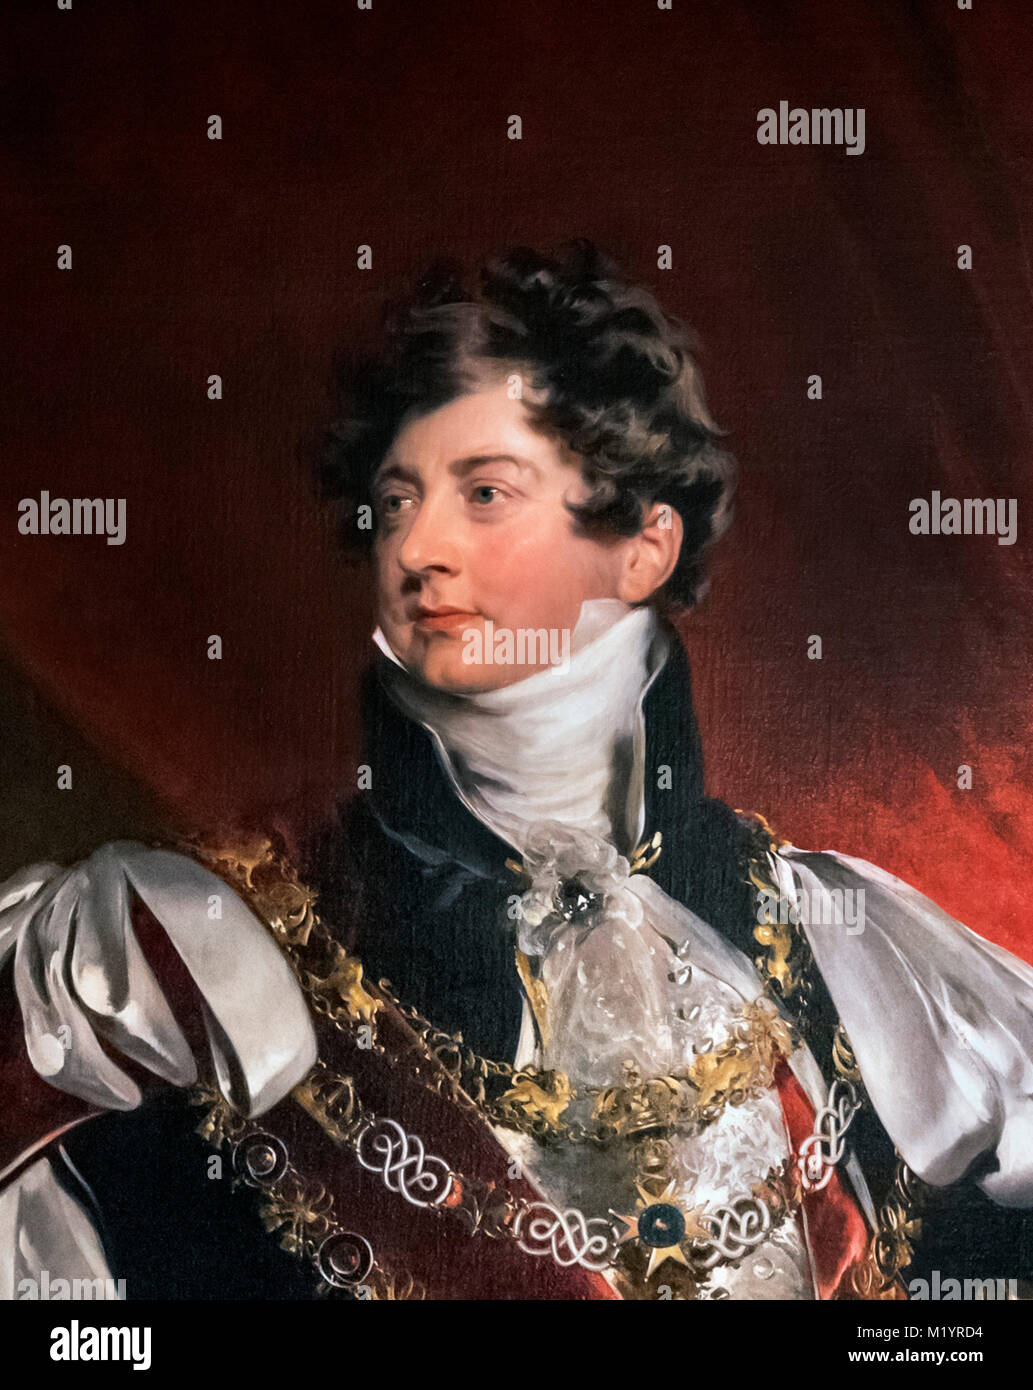 George IV. Portrait of King George IV, attributed to the studio of Sir Thomas Lawrence. Detail from a larger painting, - Stock Image